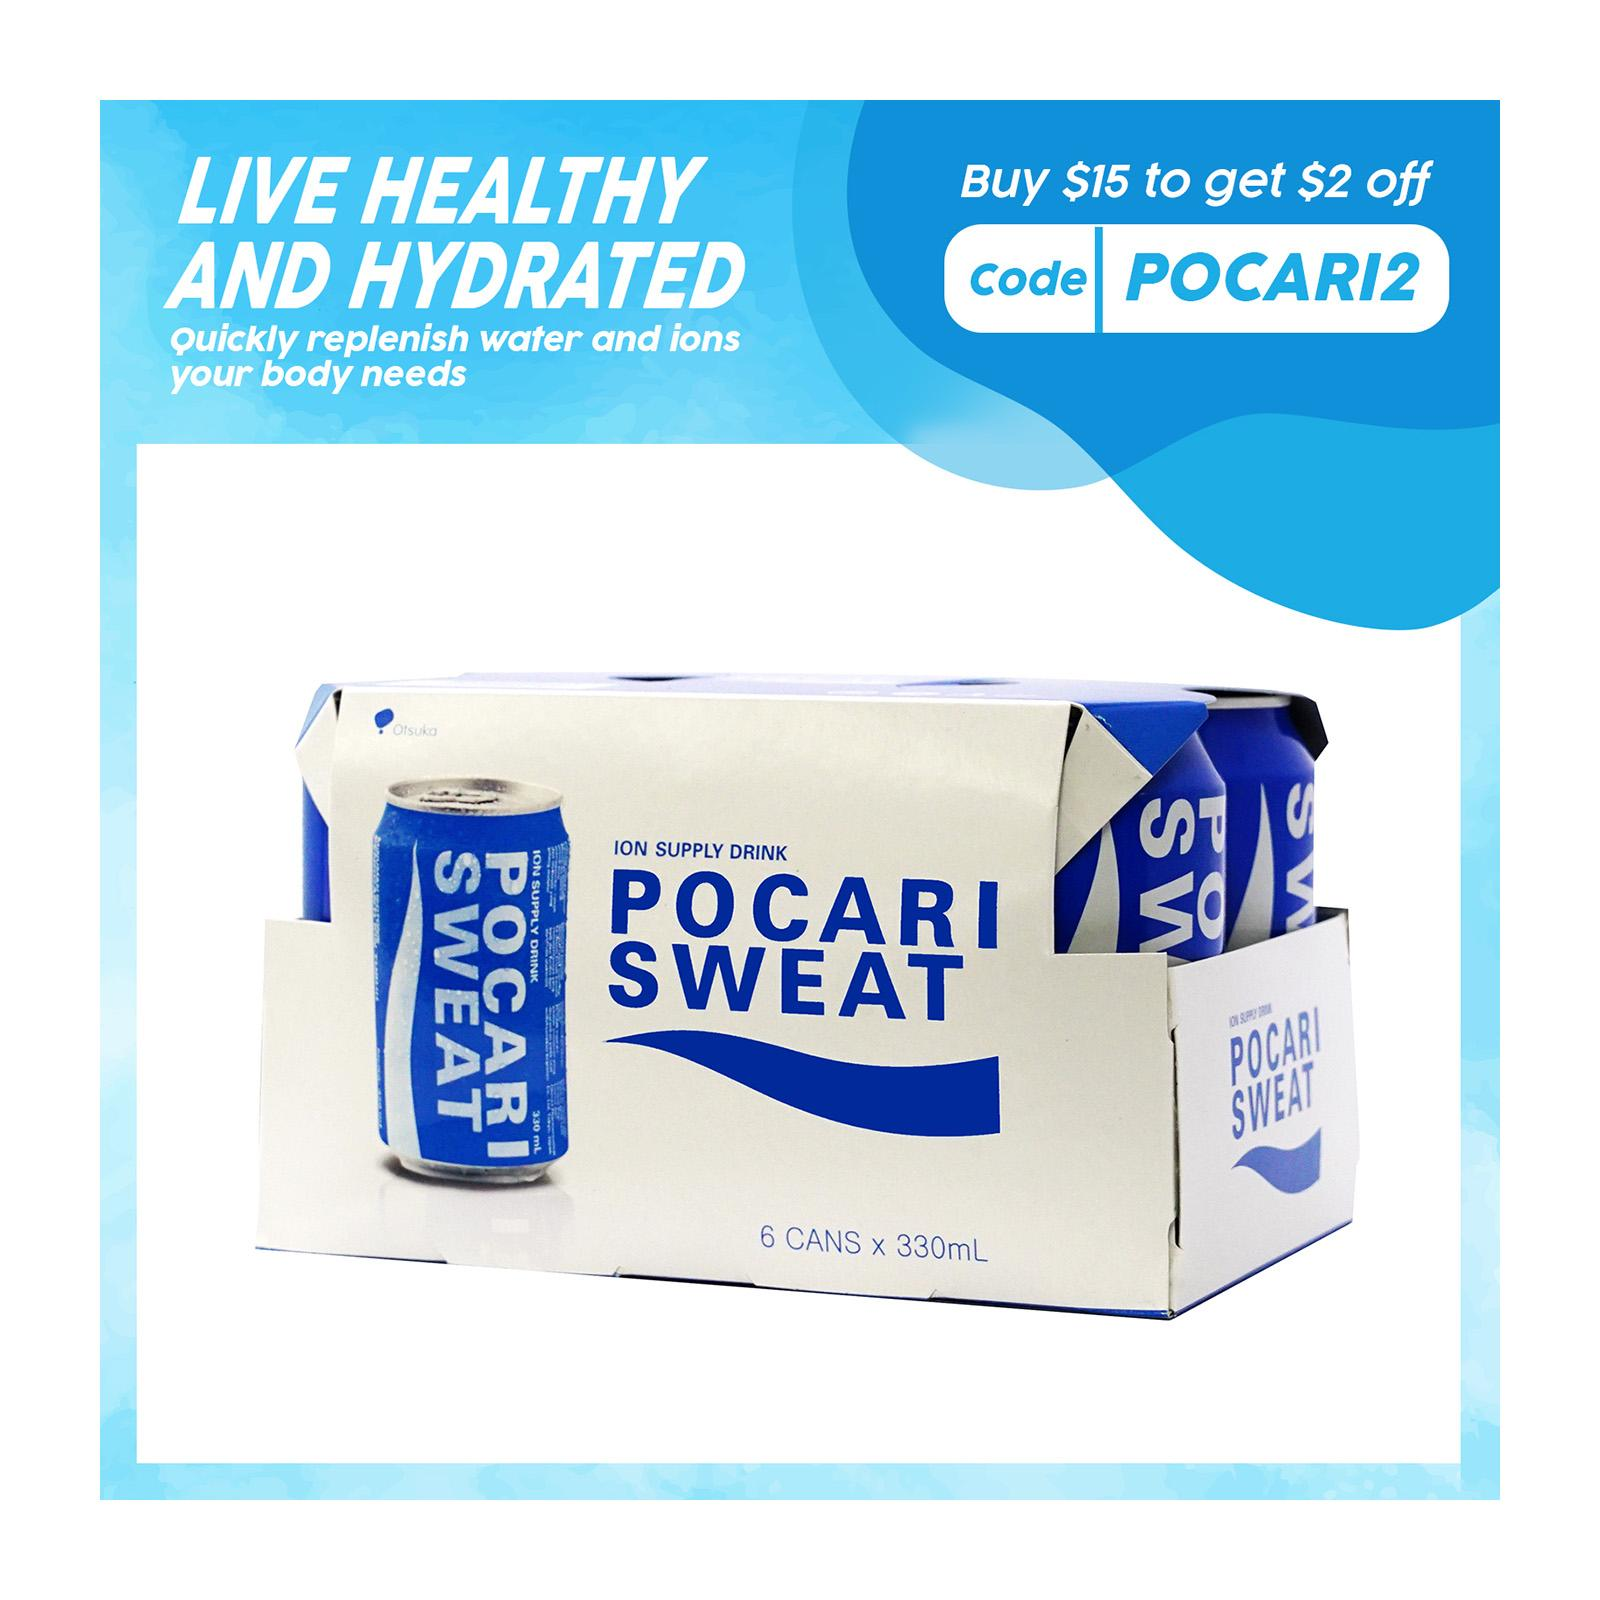 POCARI SWEAT Sweat Isotonic Drink 6sX330ml